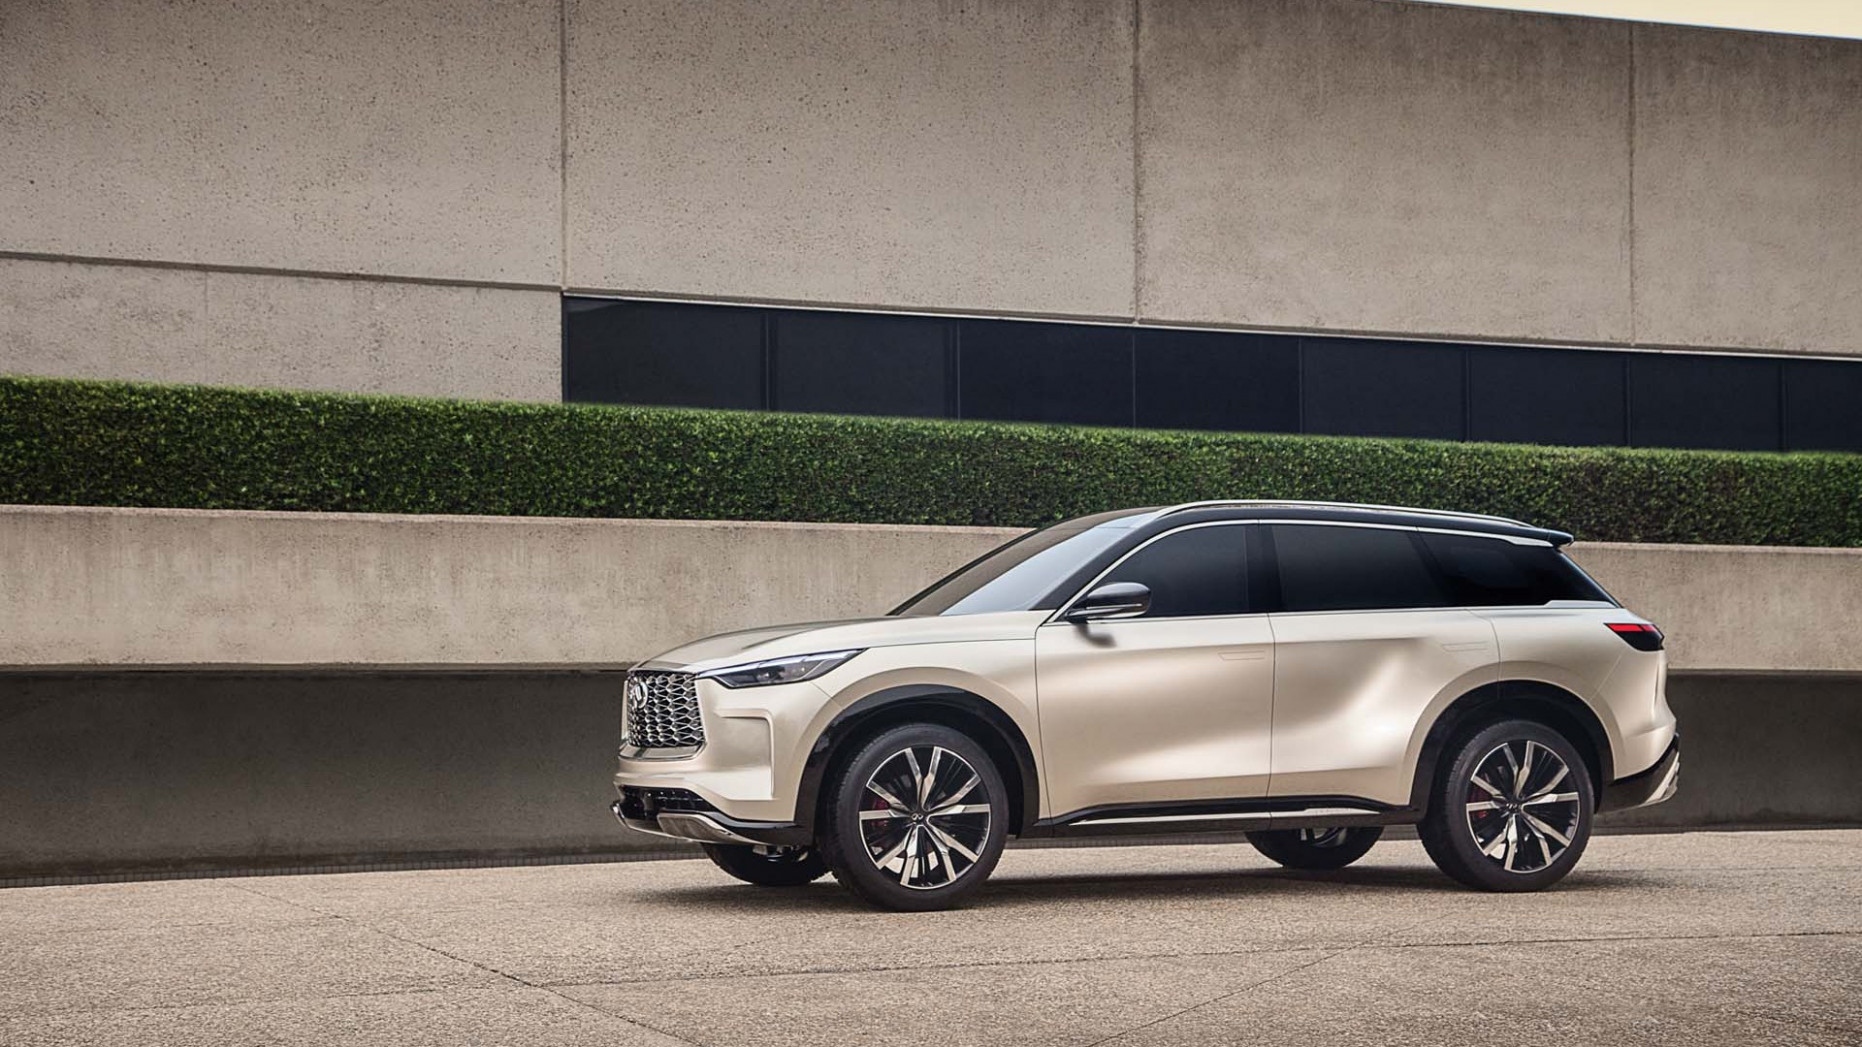 Photos When Does The 2022 Infiniti Qx60 Come Out